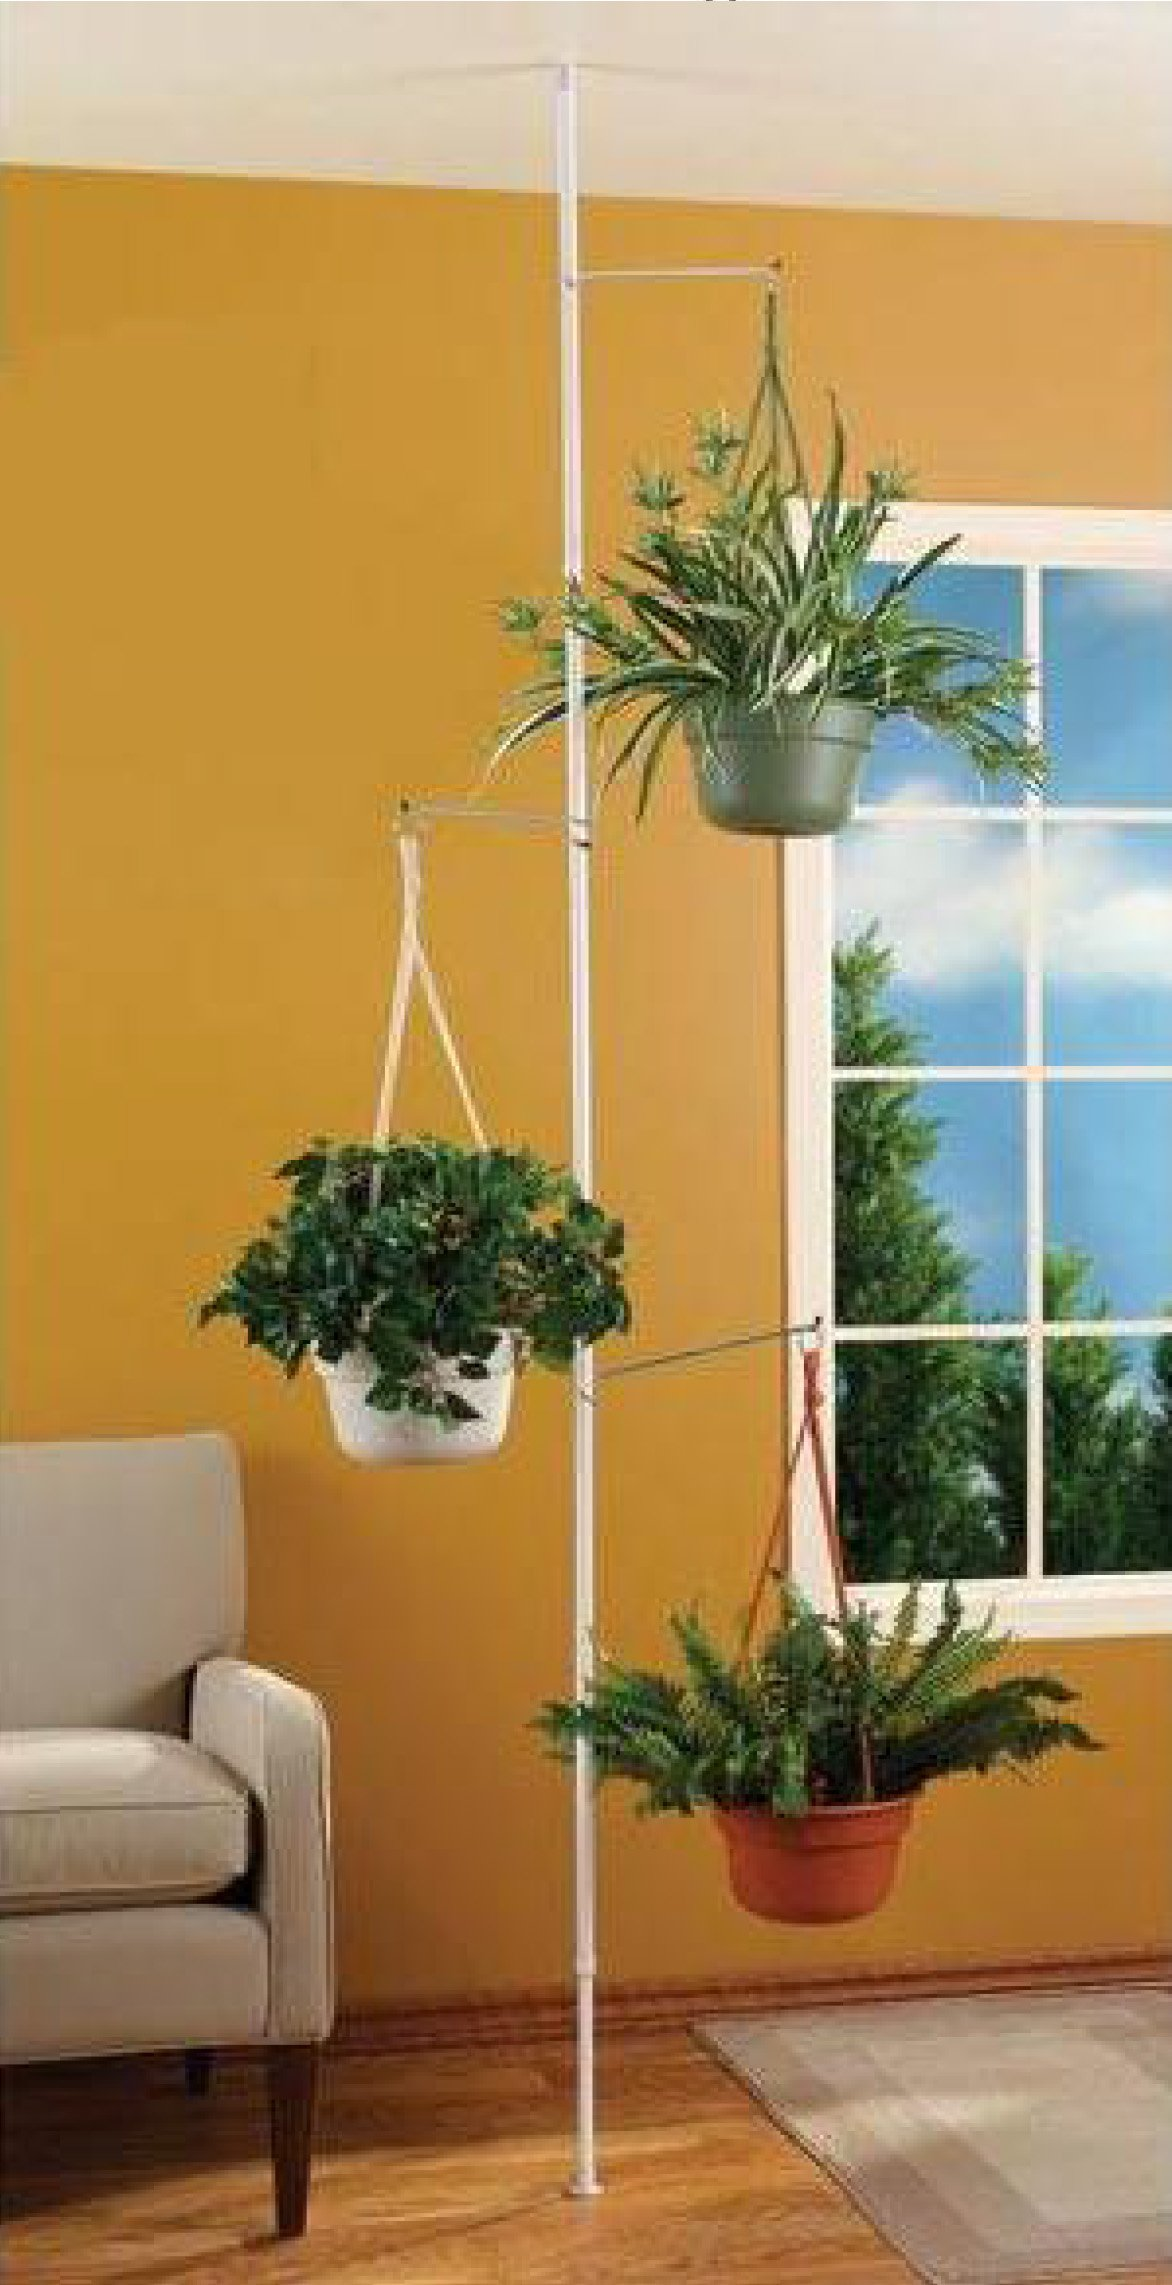 SPRING TENSION ROD INDOOR PLANT POLE WITH 3 ADJUSTABLE ARMS by INDOOR PLANT POLE